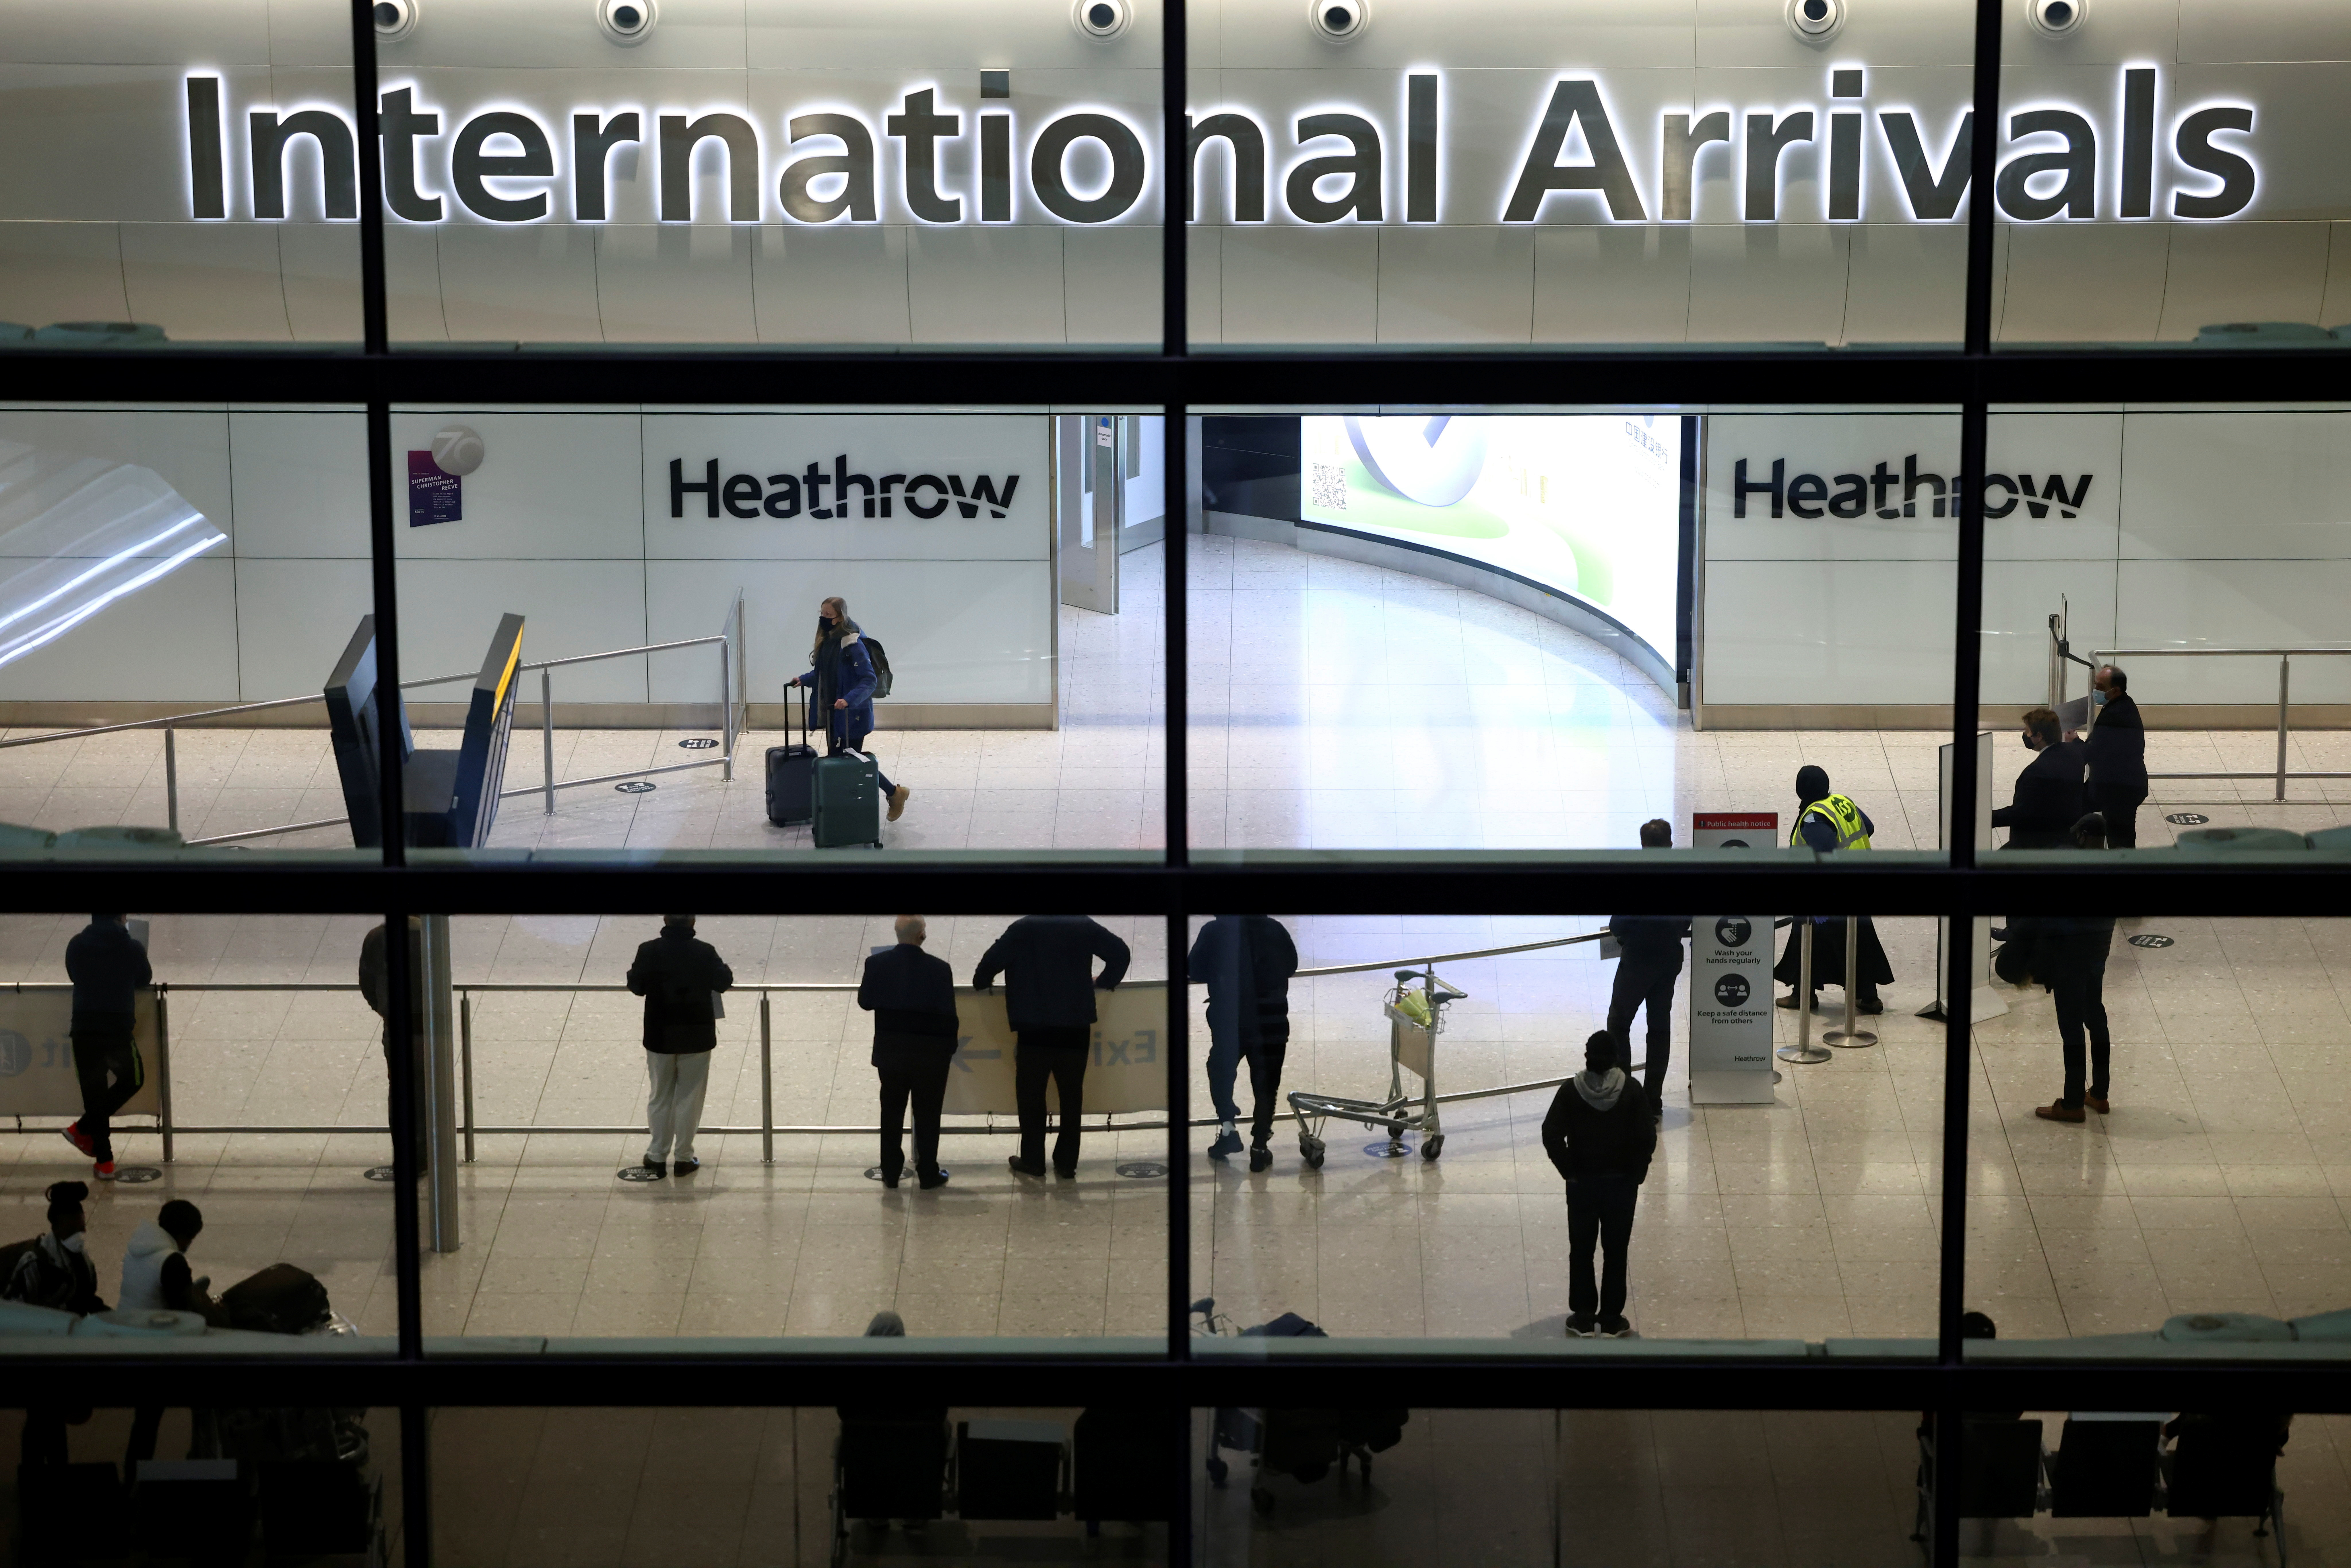 People wait at the arrivals area, as tighter rules for international travellers start, at terminal 2 of the Heathrow Airport, amid the spread of the coronavirus disease (COVID-19) pandemic, London, Britain, January 18, 2021. REUTERS/Henry Nicholls